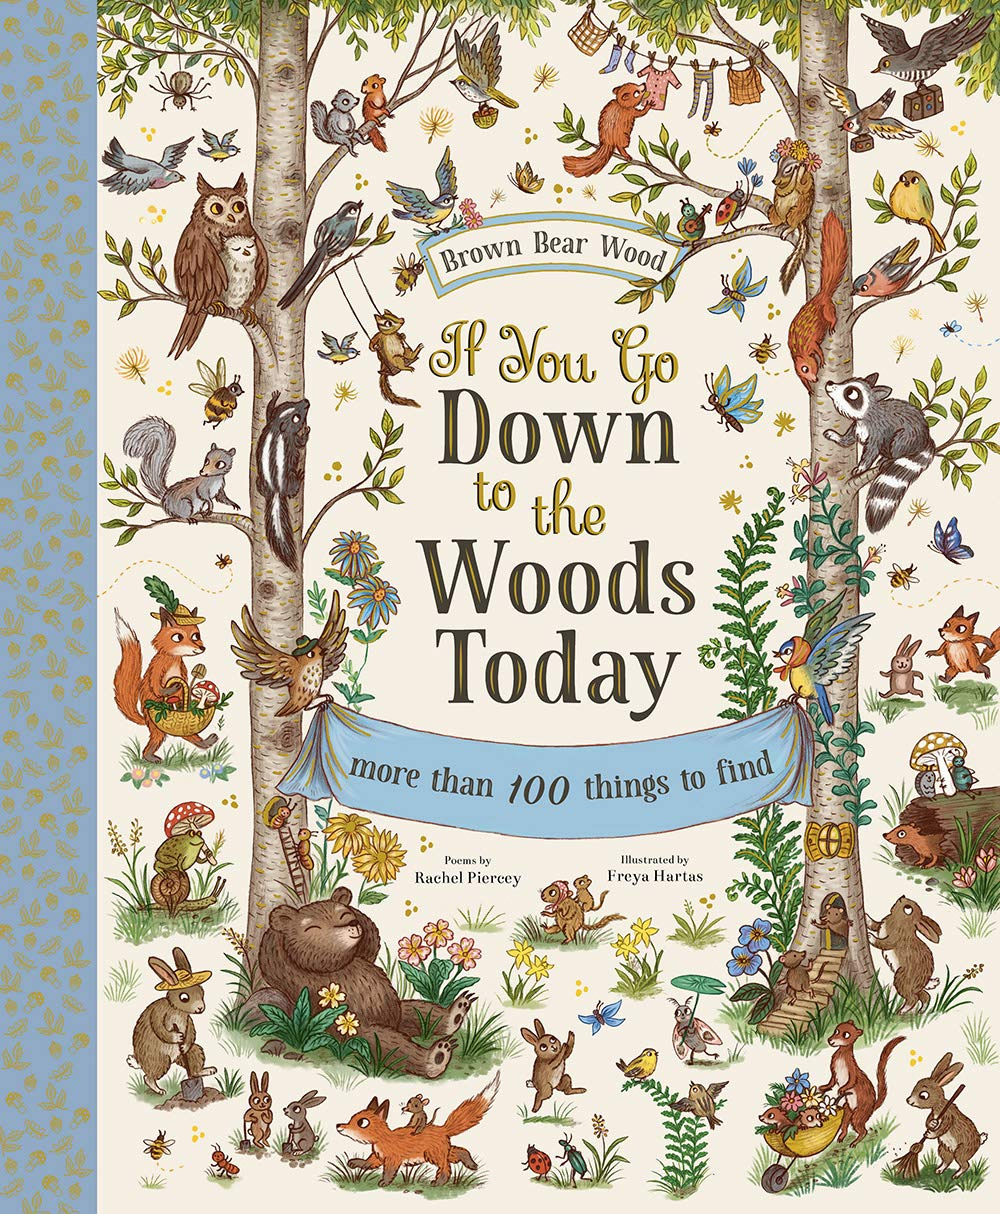 If you go down to the woods today (cover)